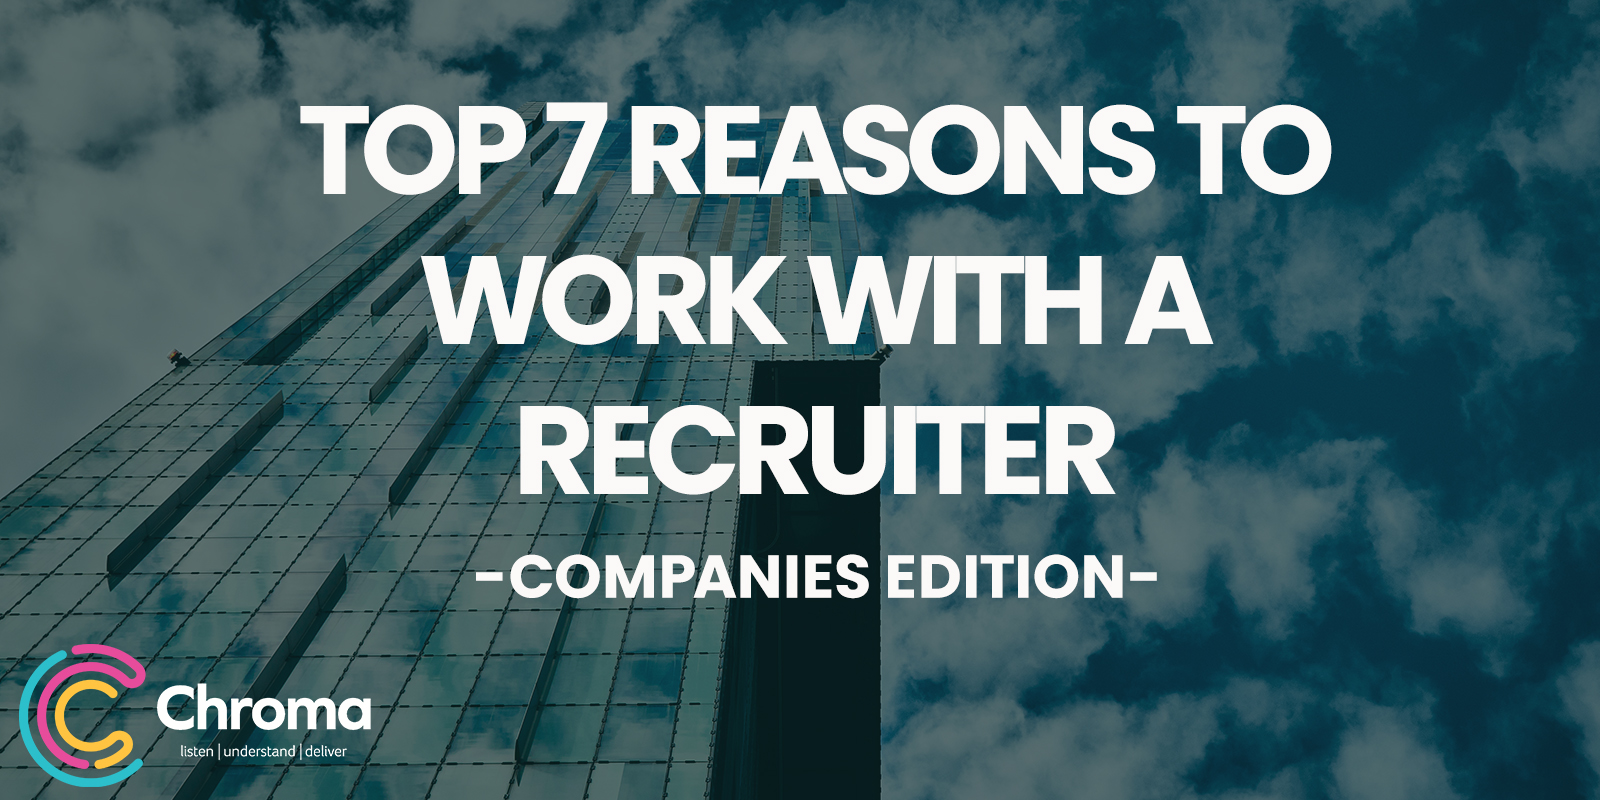 Top 7 reasons to work with a recruiter -Companies edition-